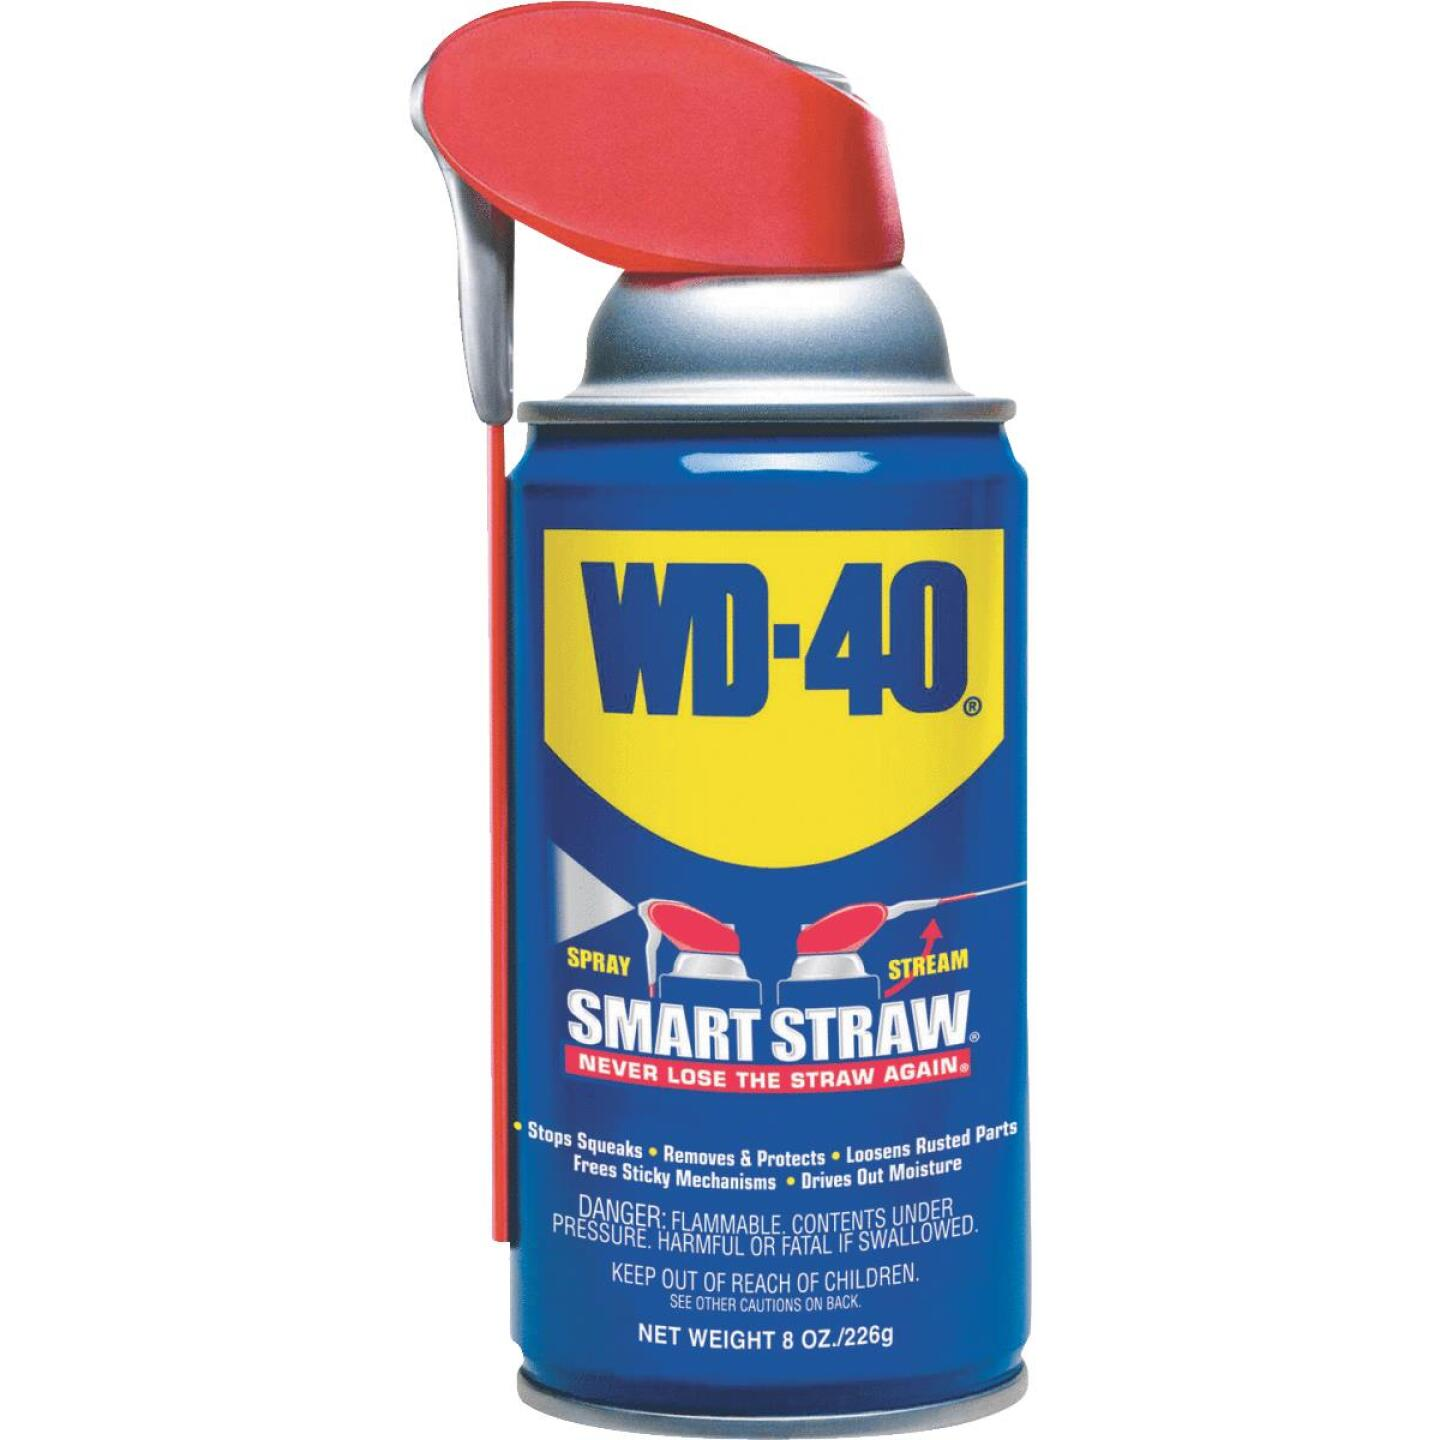 WD-40 8 Oz. Aerosol Multi-Purpose Lubricant with Smart Straw Image 1